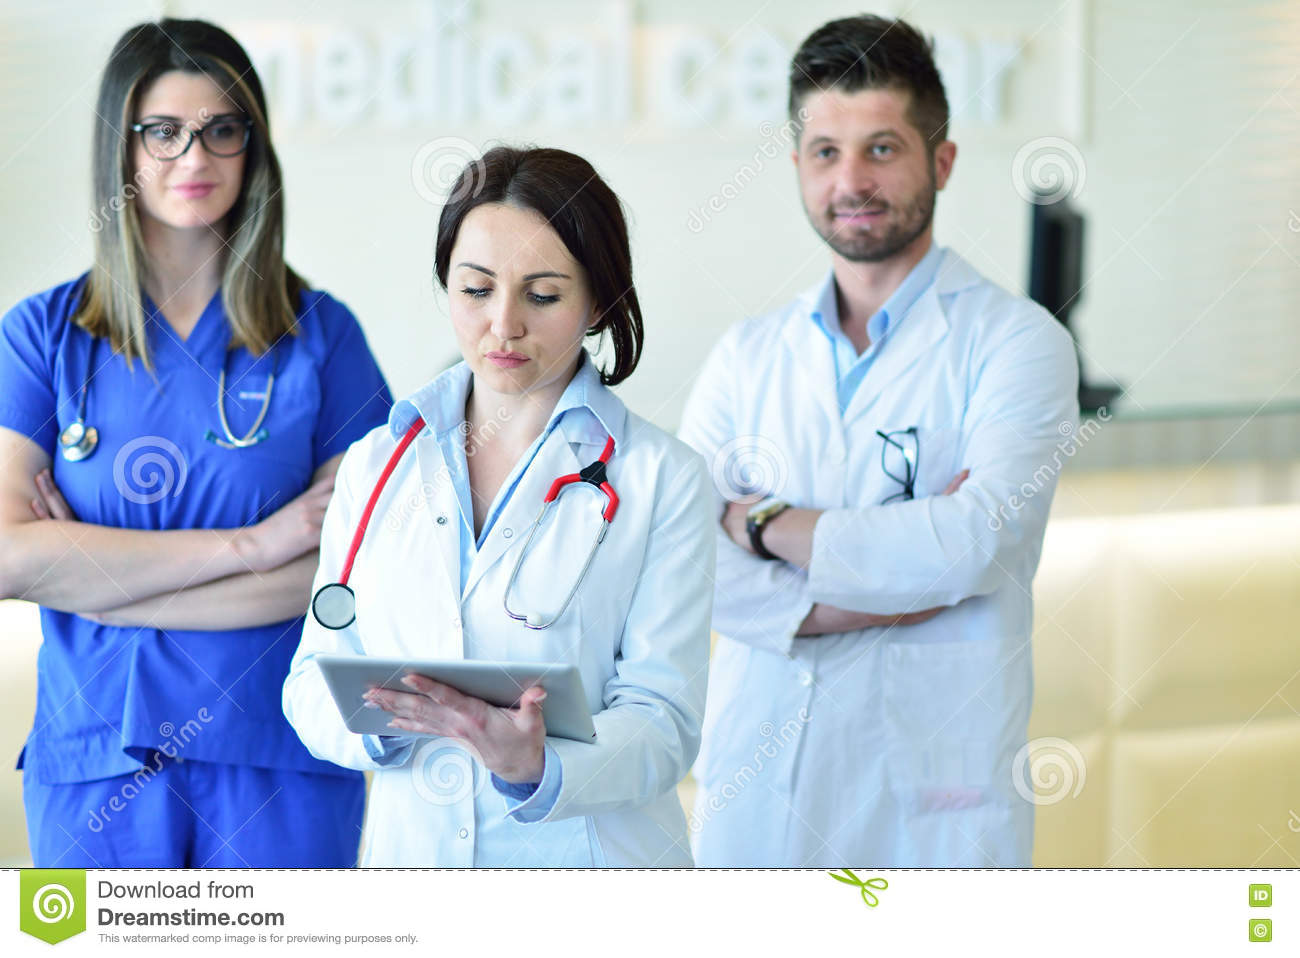 Female doctor leading a medical team at the hospital